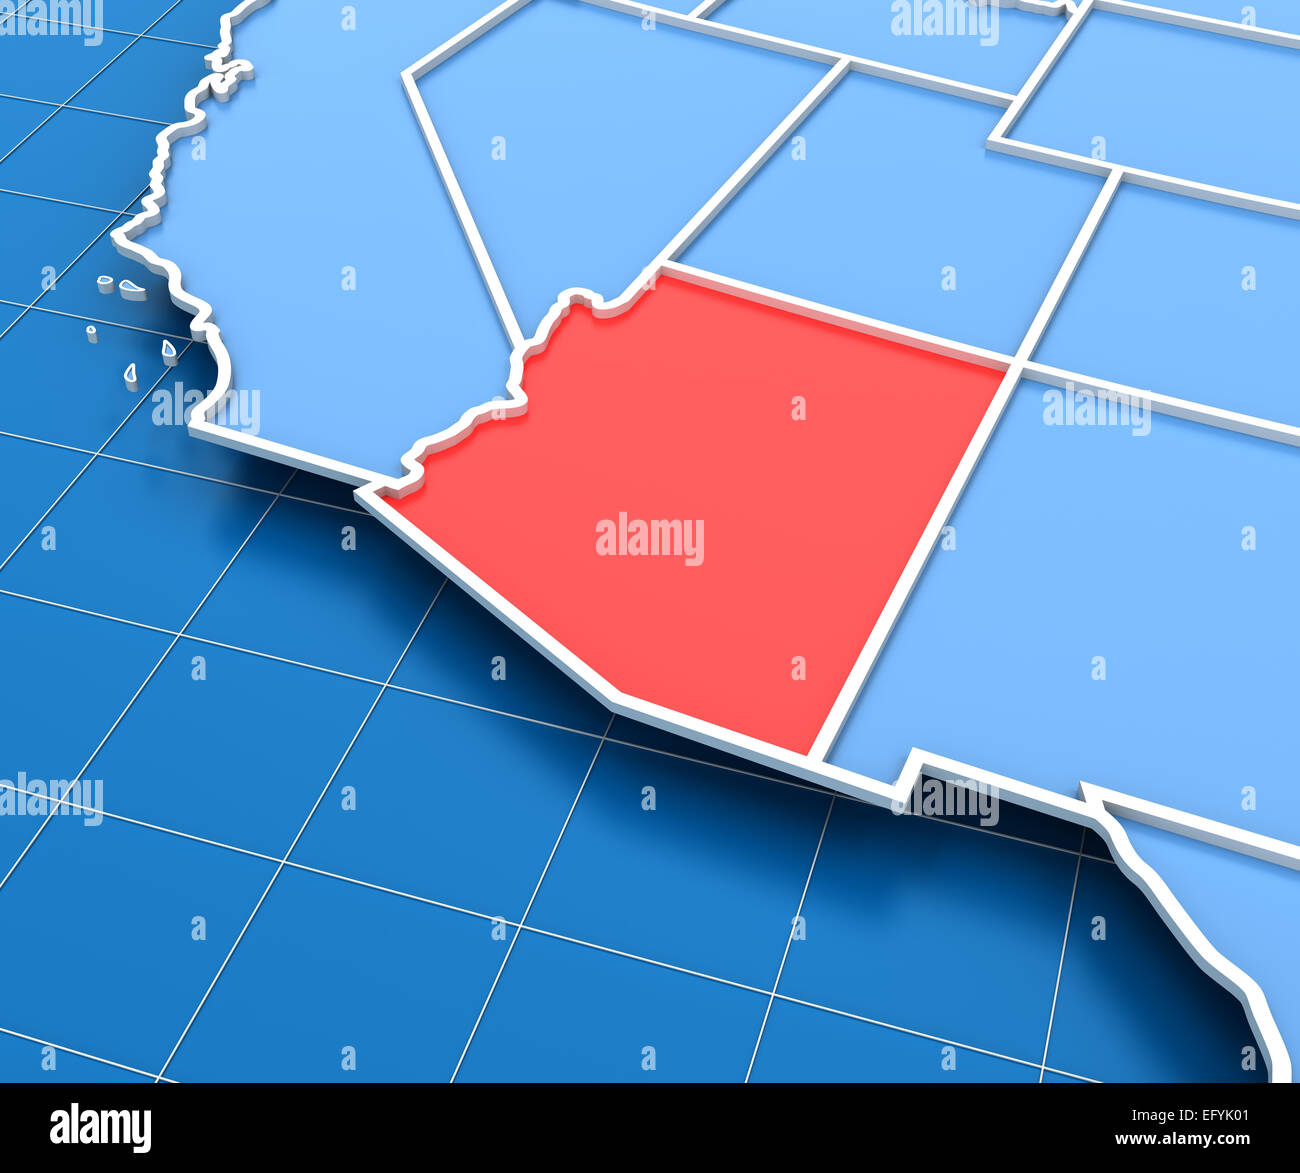 3d Render Of USA Map With Arizona State Highlighted Stock Photo - Us Map With Arizona Highlighted